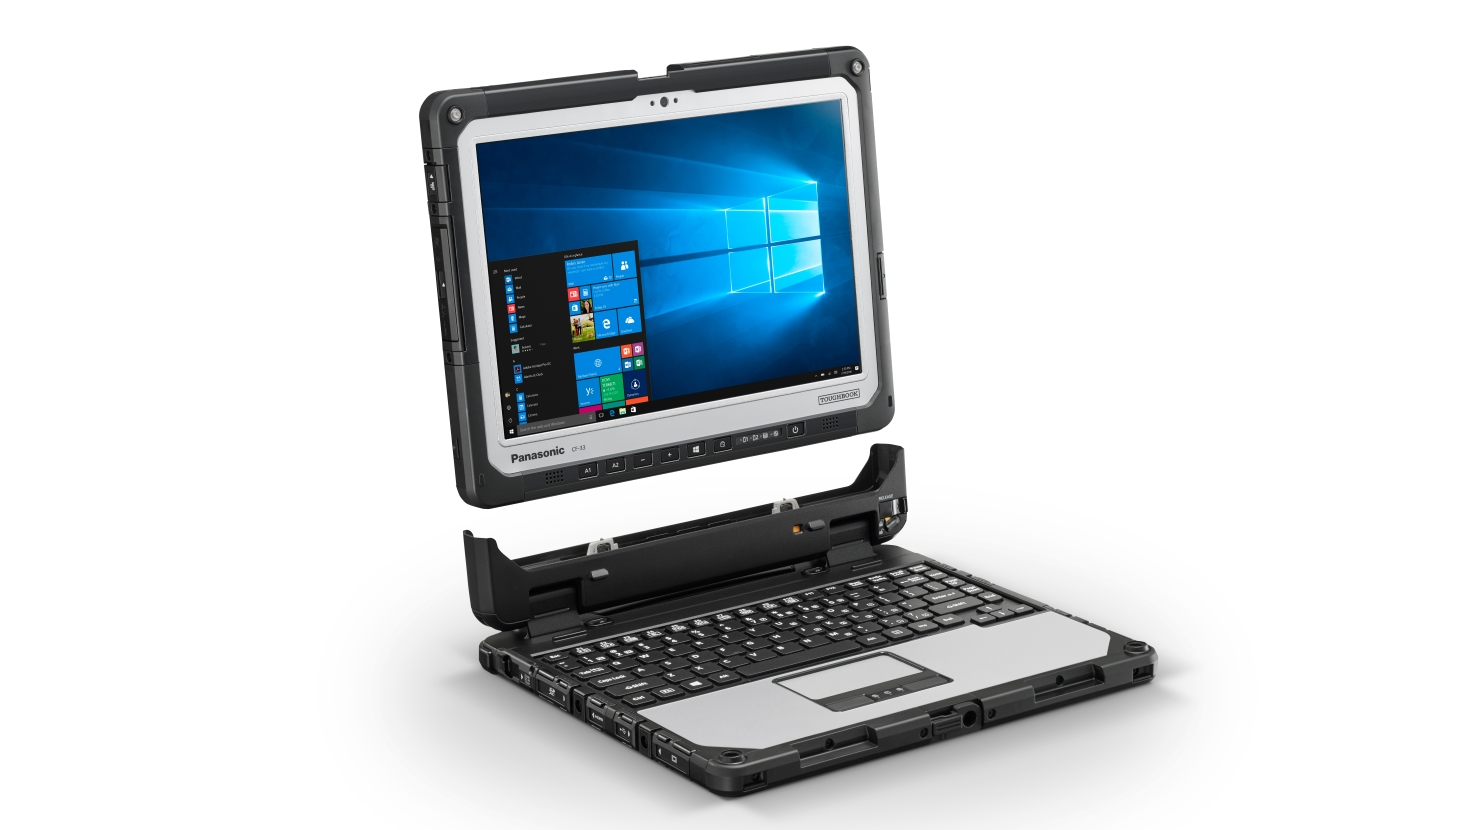 Best tablets with keyboards: Panasonic Toughbook CF-33